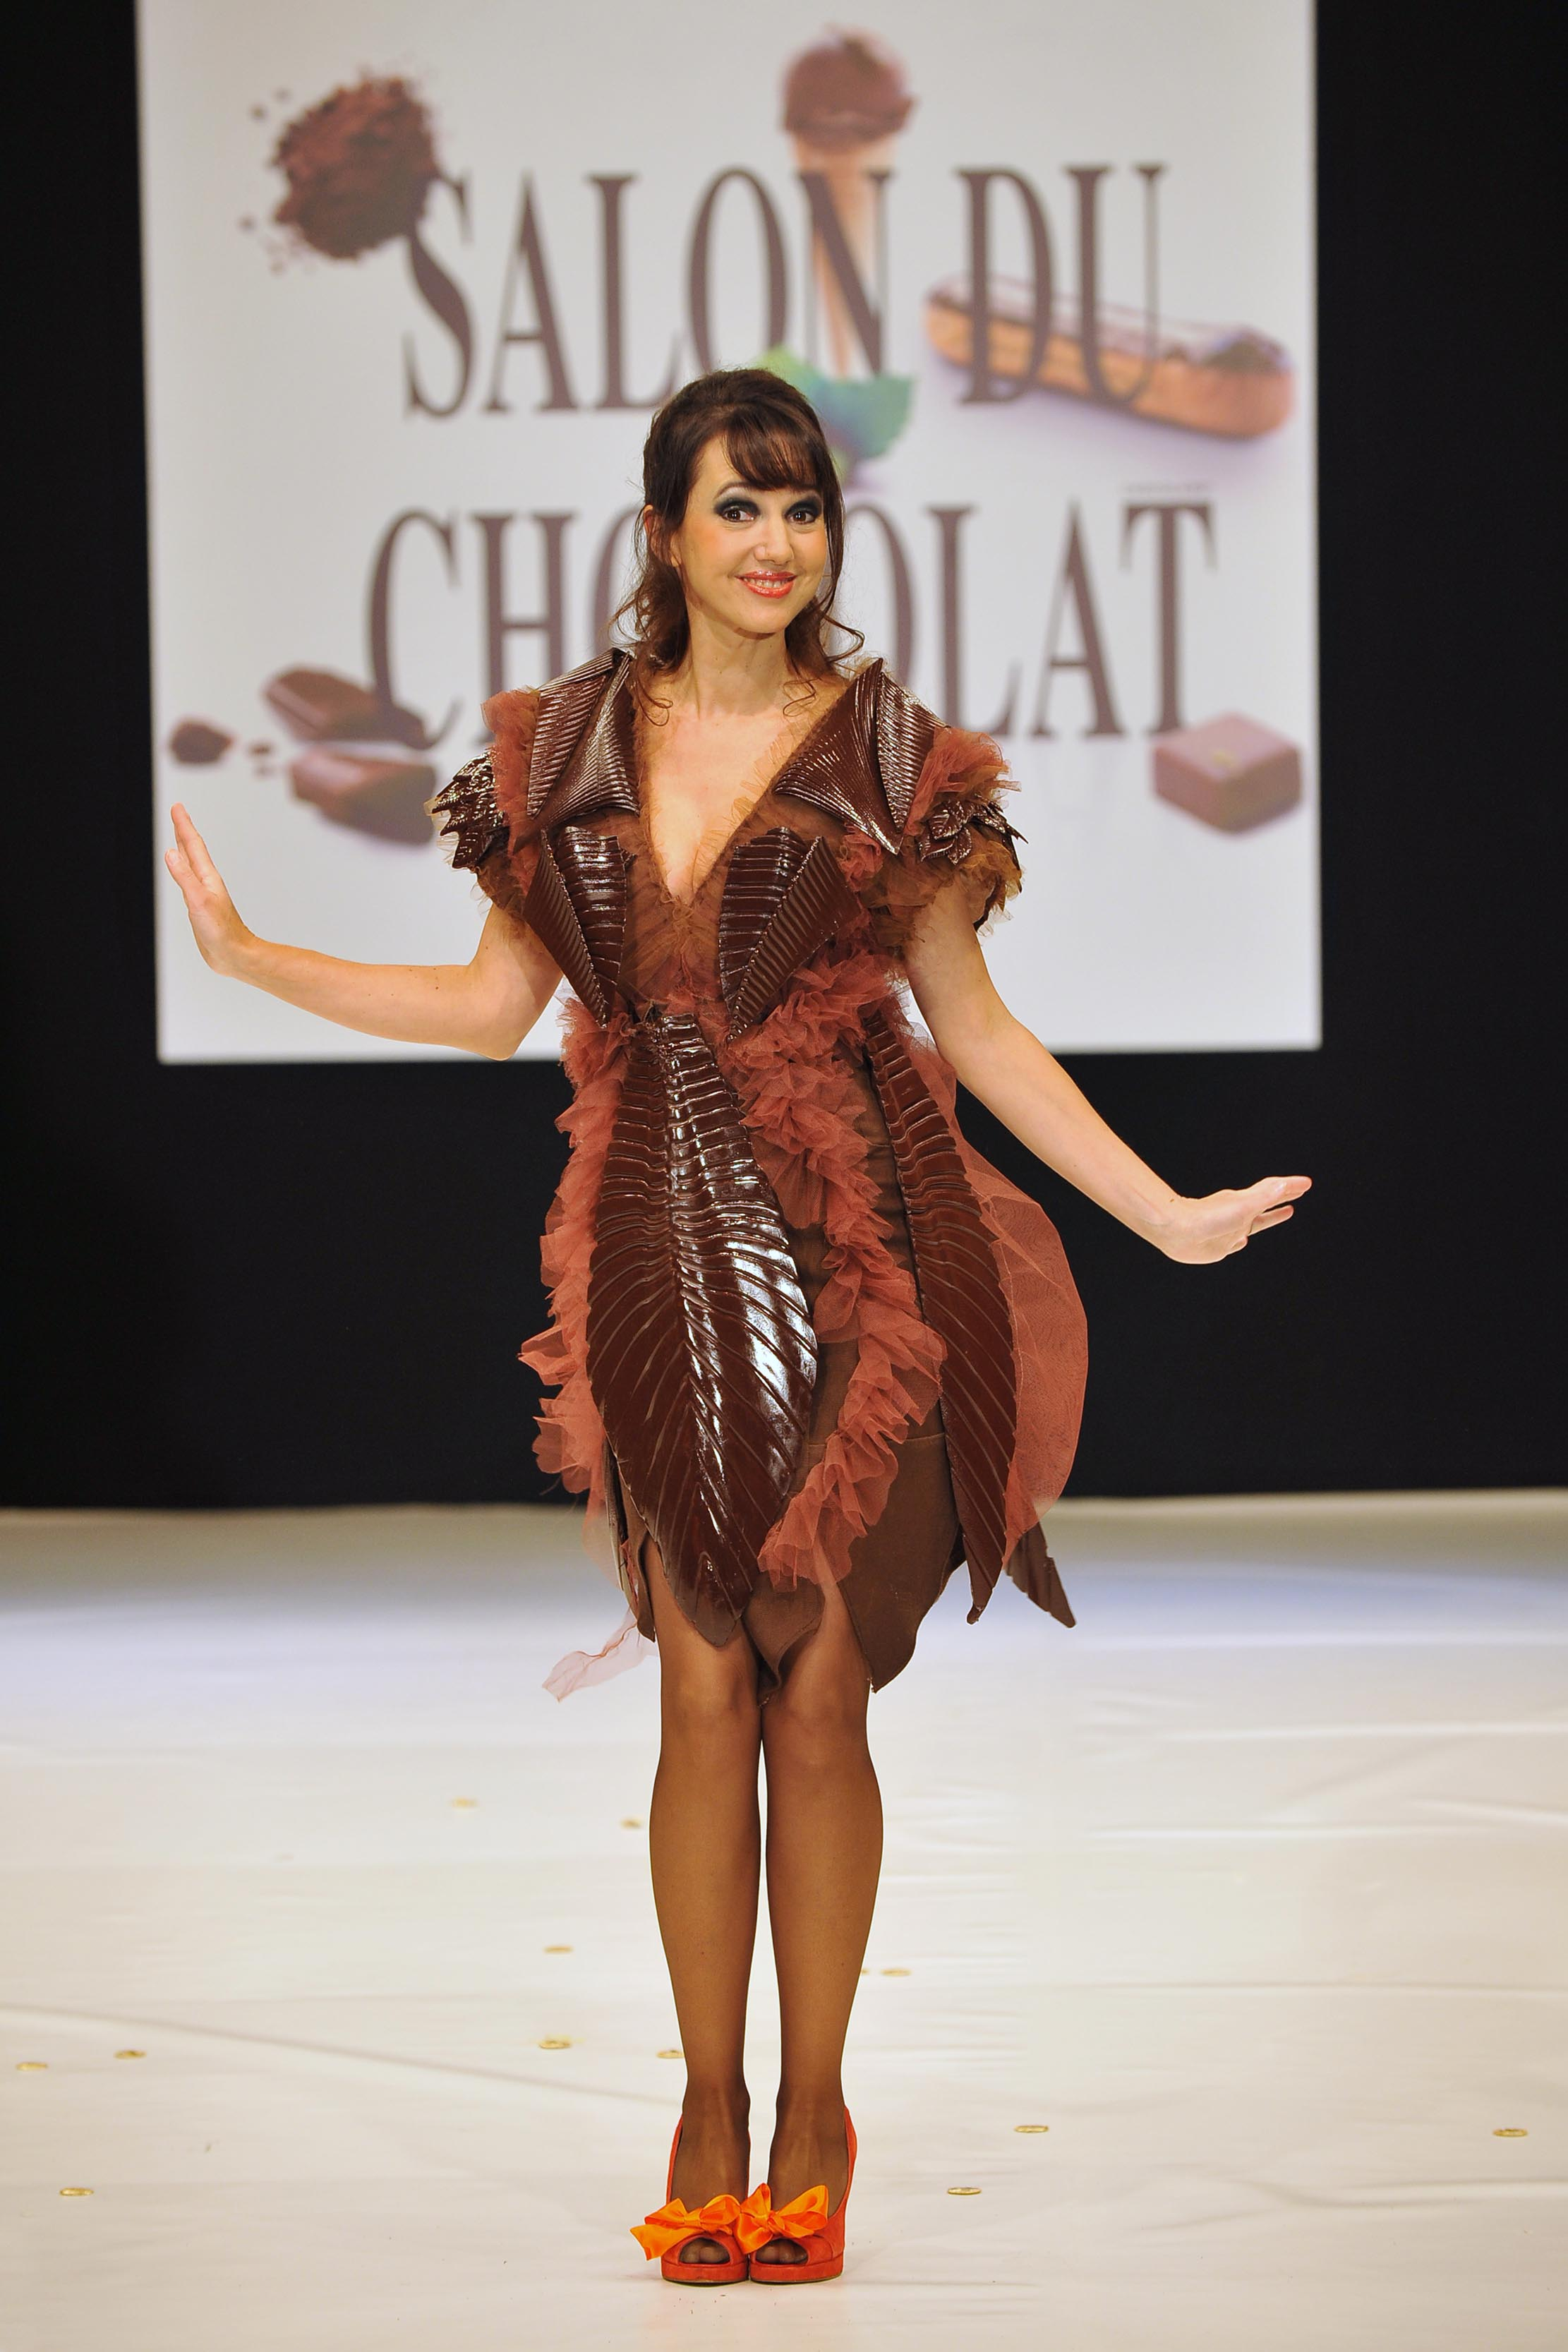 Local food and wine salon du chocolat - Salon du chocolat rodez ...